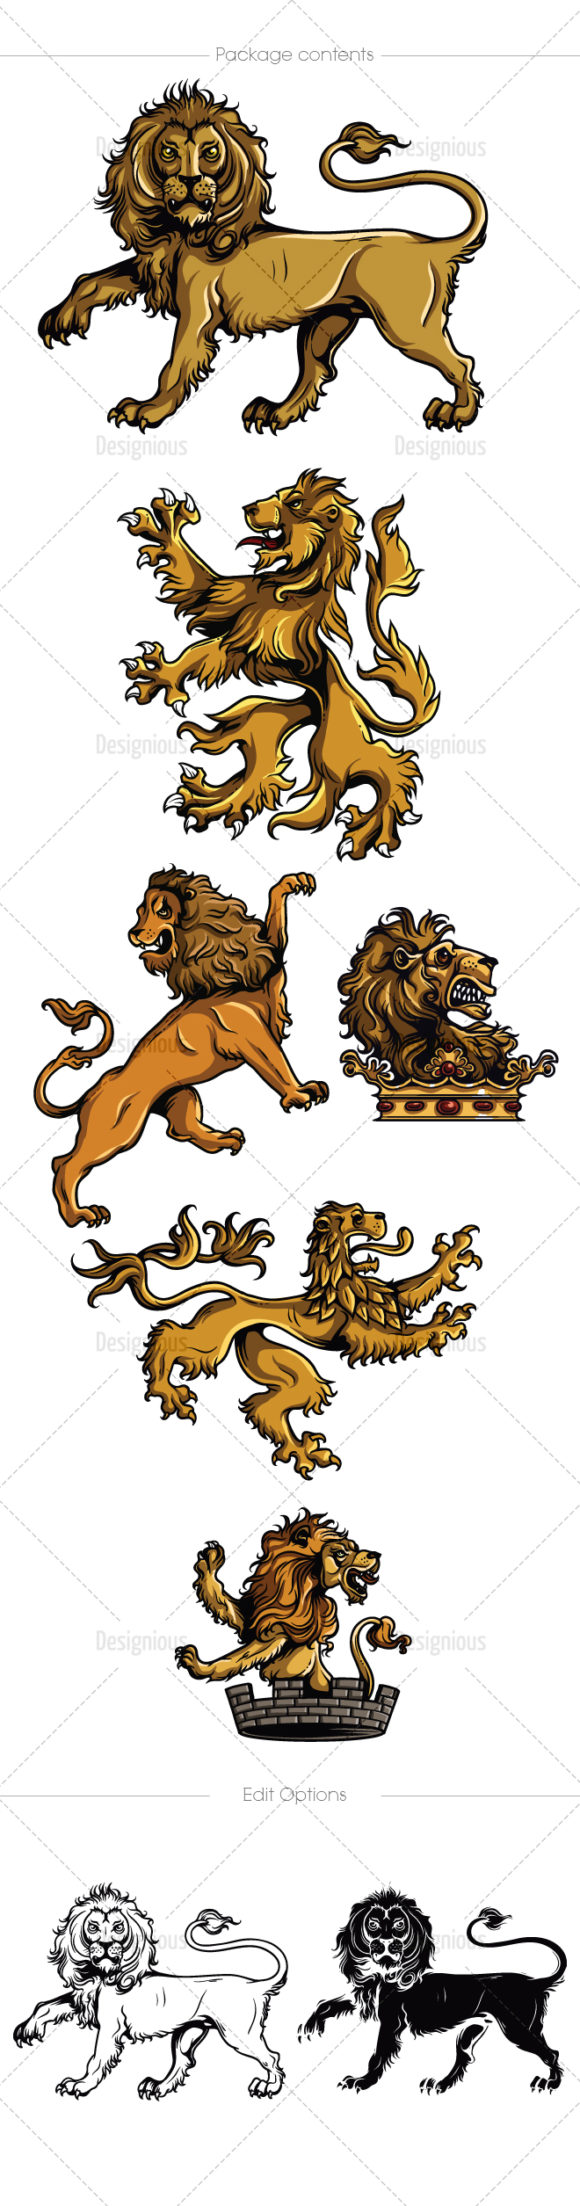 Gothic Lions Vector Pack 1 products designious vector gothic lions 1 large